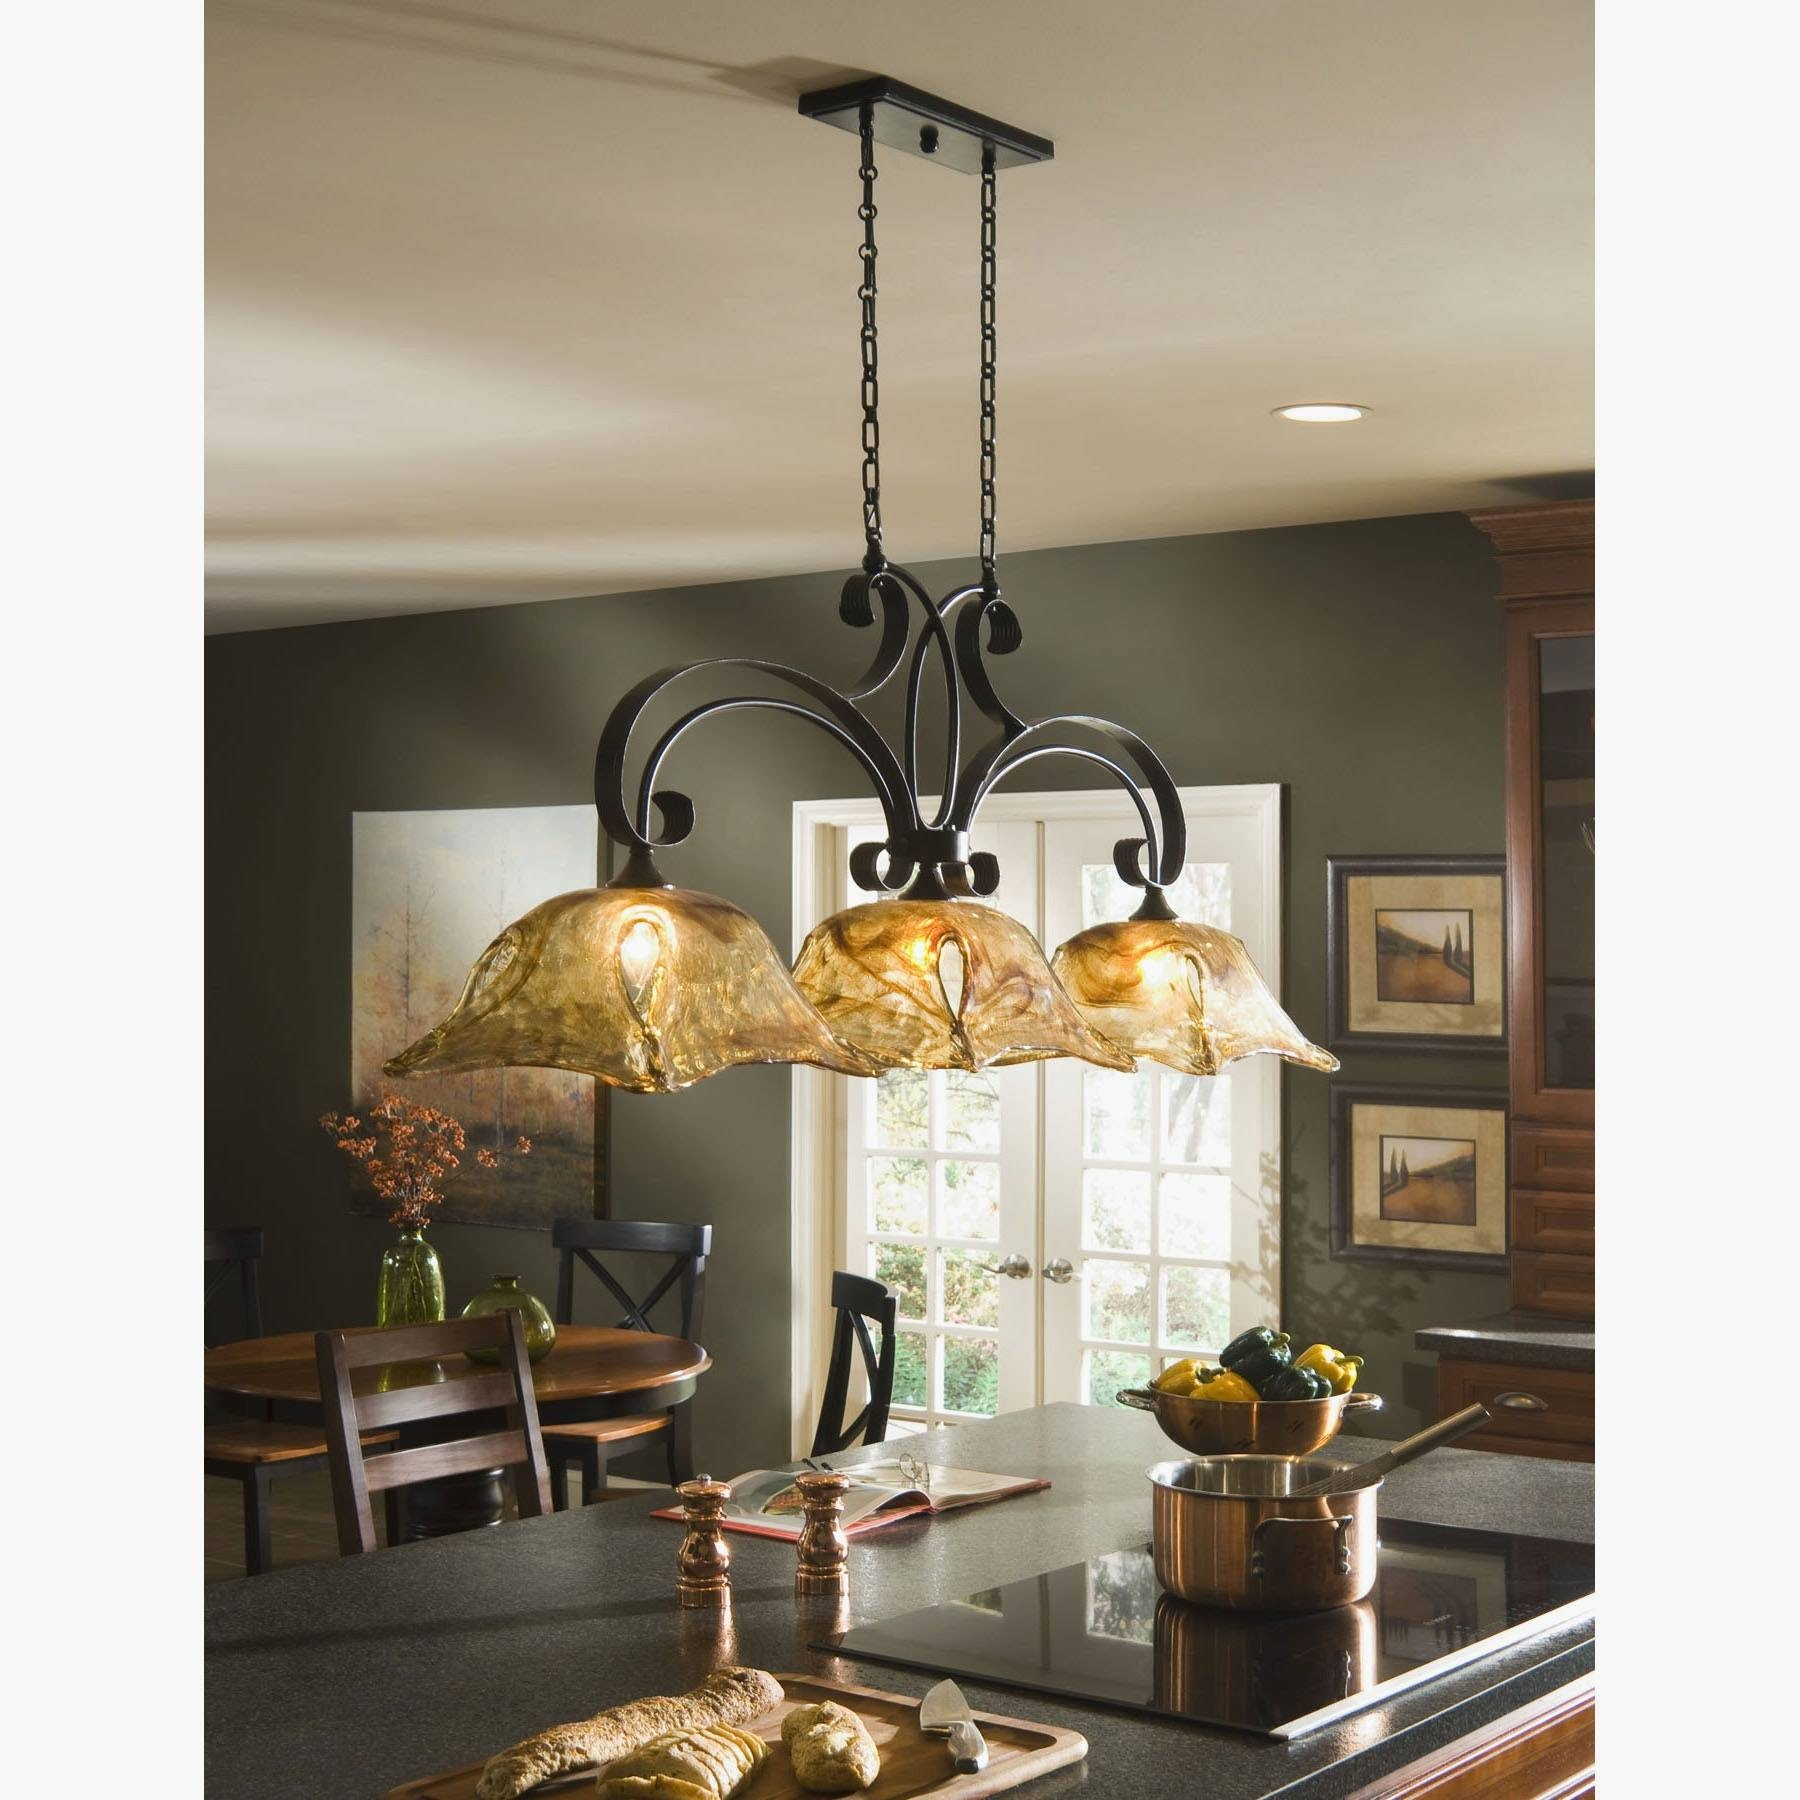 Wrought Iron Light Fixtures Kitchens Choice Image – Home Fixtures Intended For Wrought Iron Kitchen Lights Fixtures (View 2 of 15)